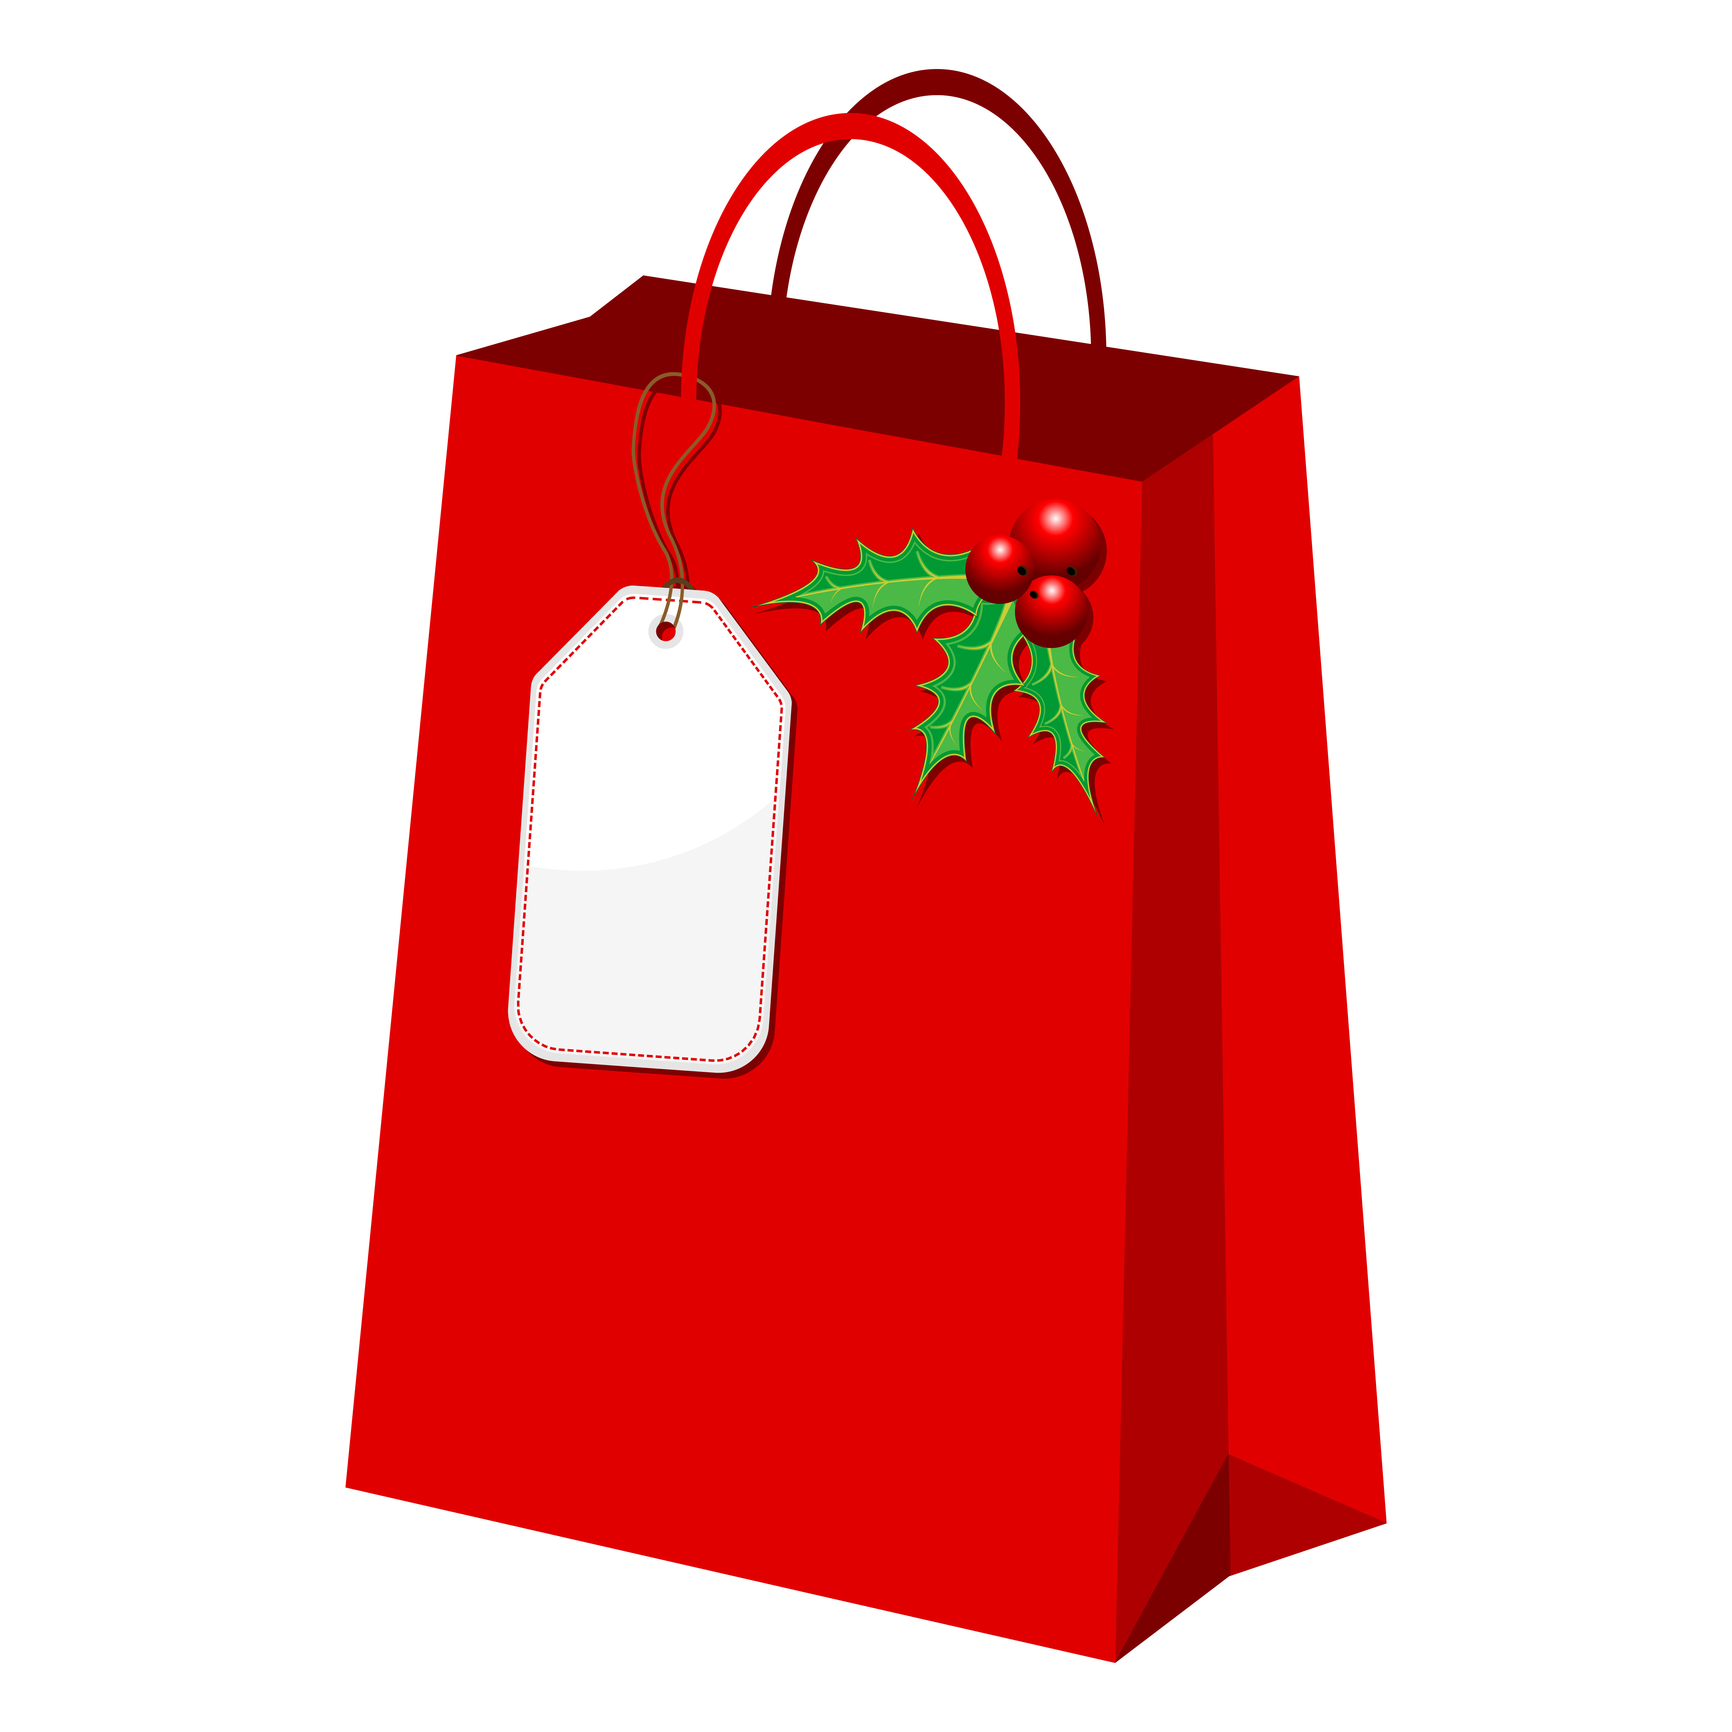 Christmas shopping bag clipart.